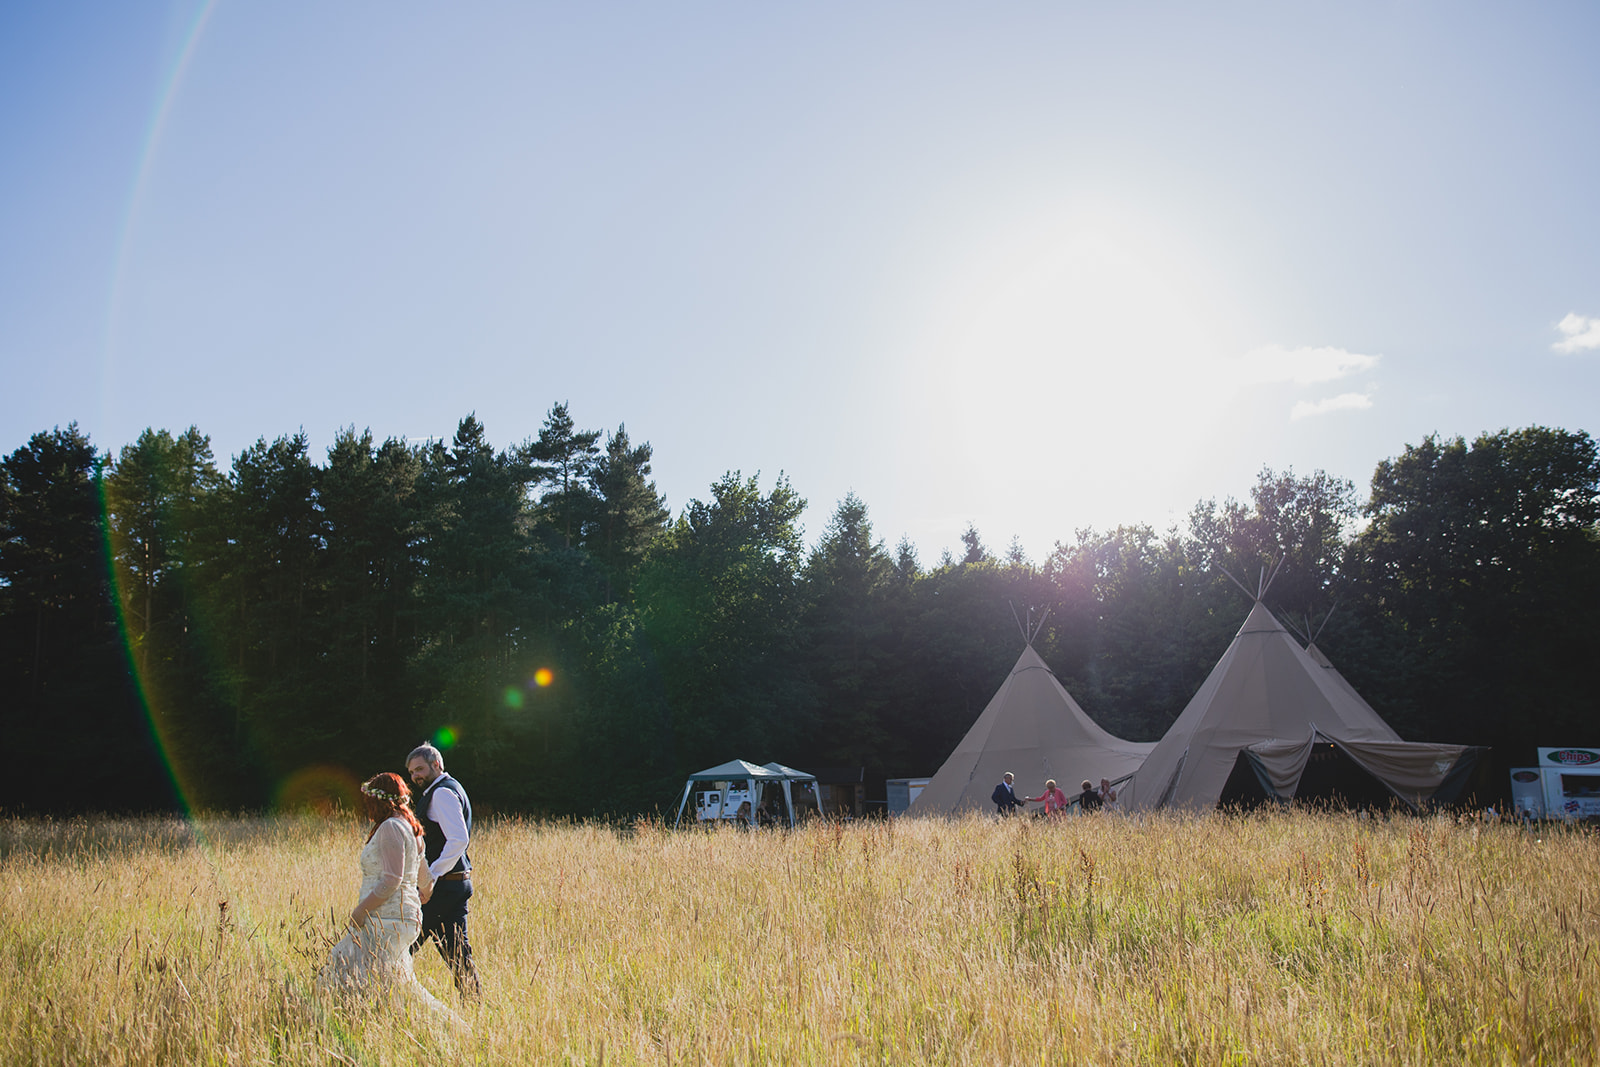 camp katur tipi wedding north yorkshire teesside middlesbrough. creative wedding photography middlesbrough north east north yorkshire. stop motion wedding films uk